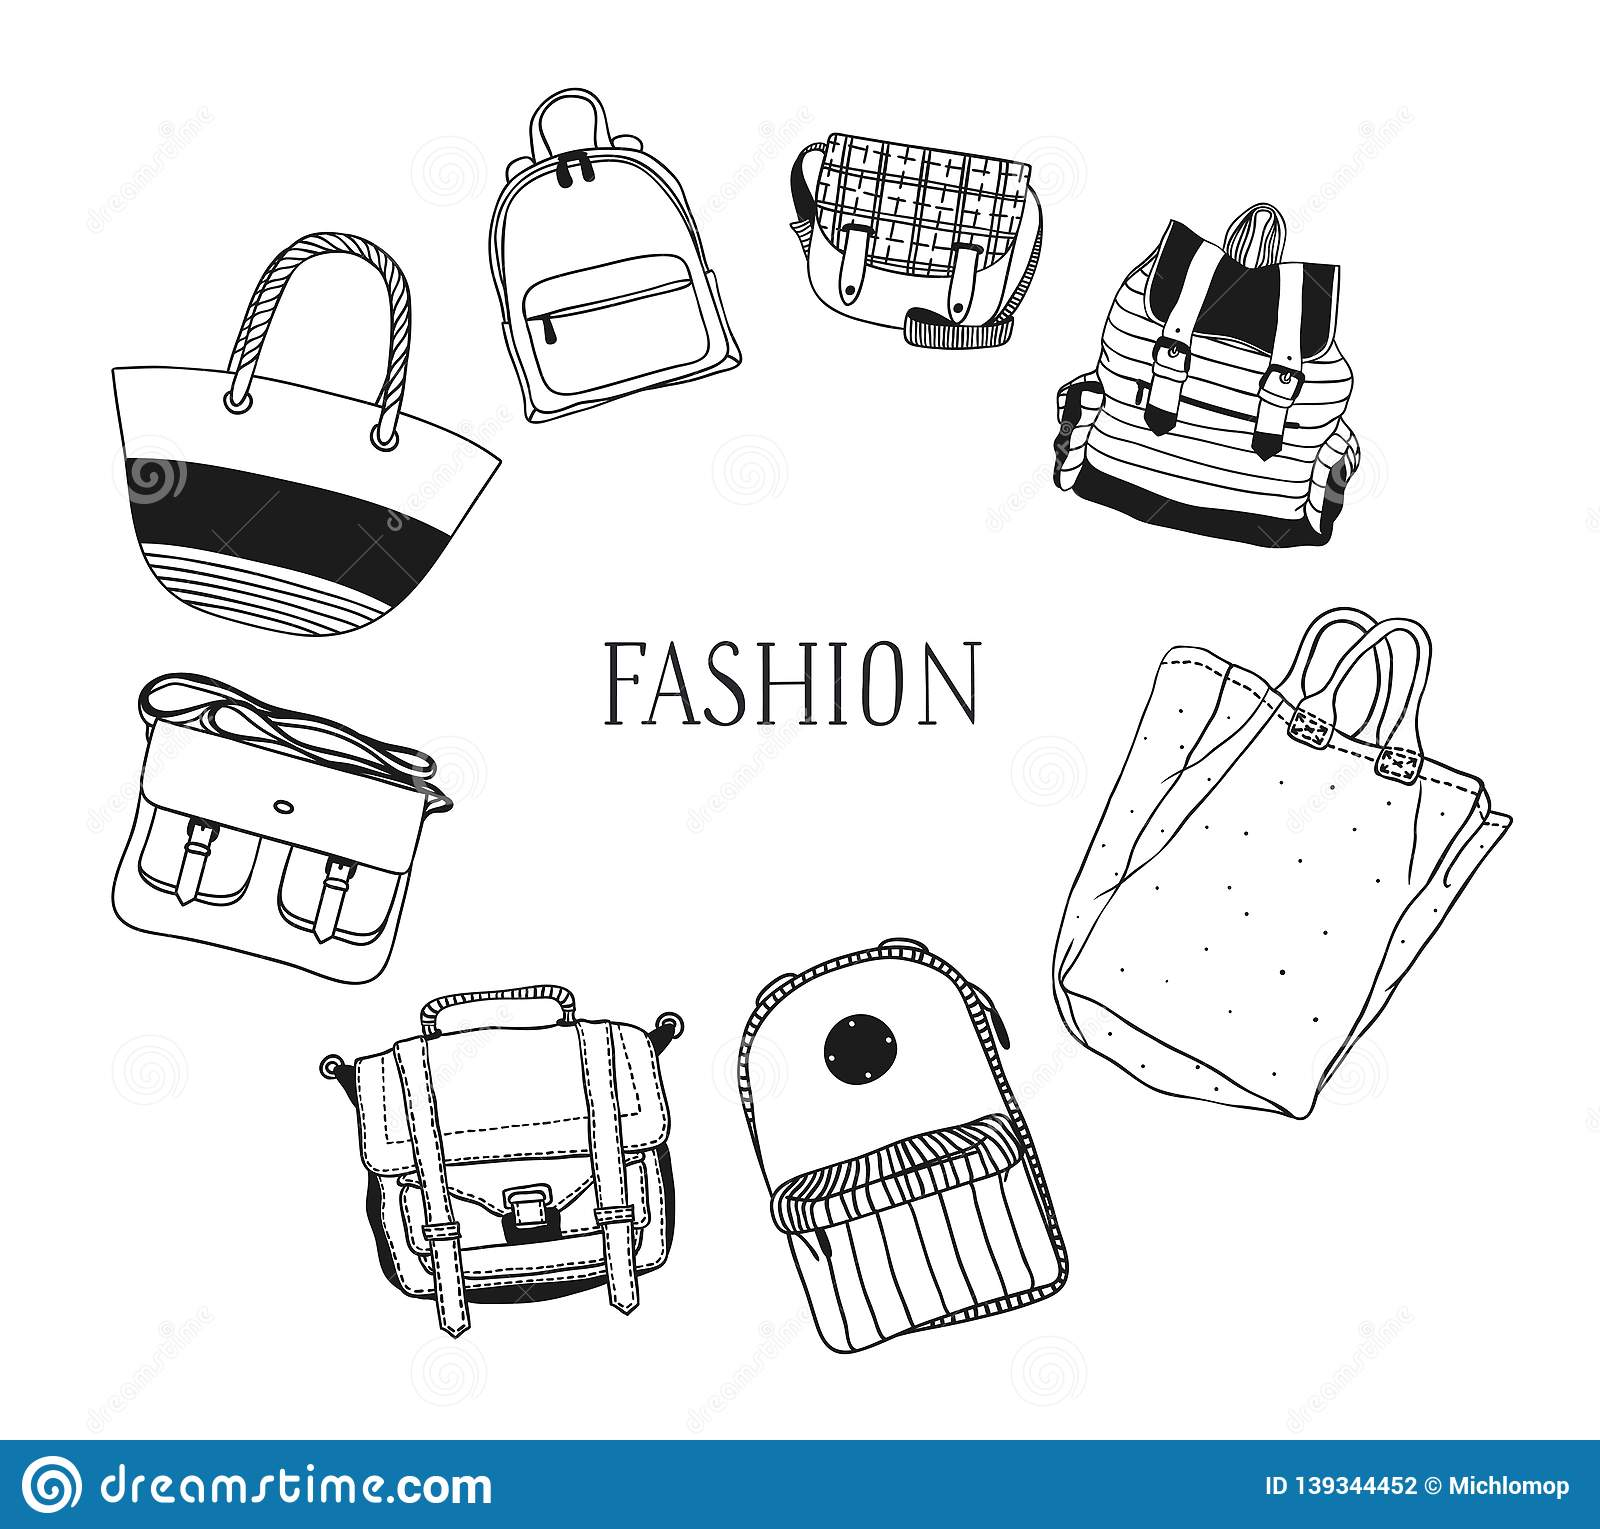 Hand drawn frame with Bags. Vector background. Actual fashion illustration. Original doodle style drawing. Creative ink art work